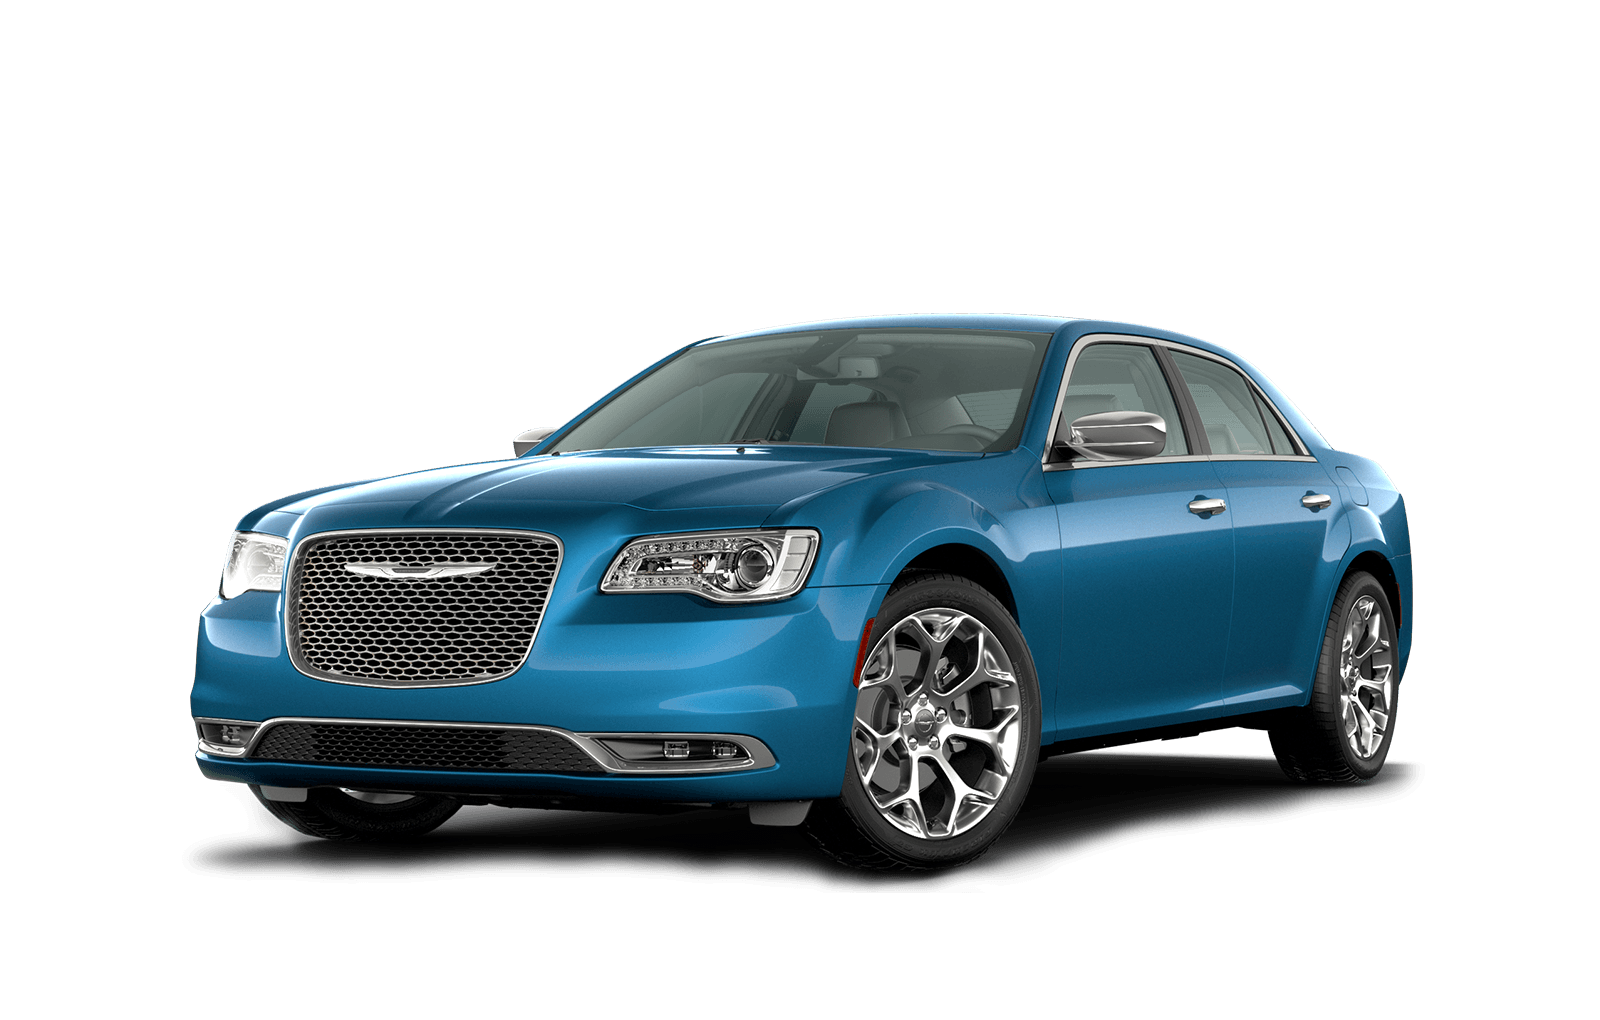 2020 Chrysler 300 Full View in blue with Wheels